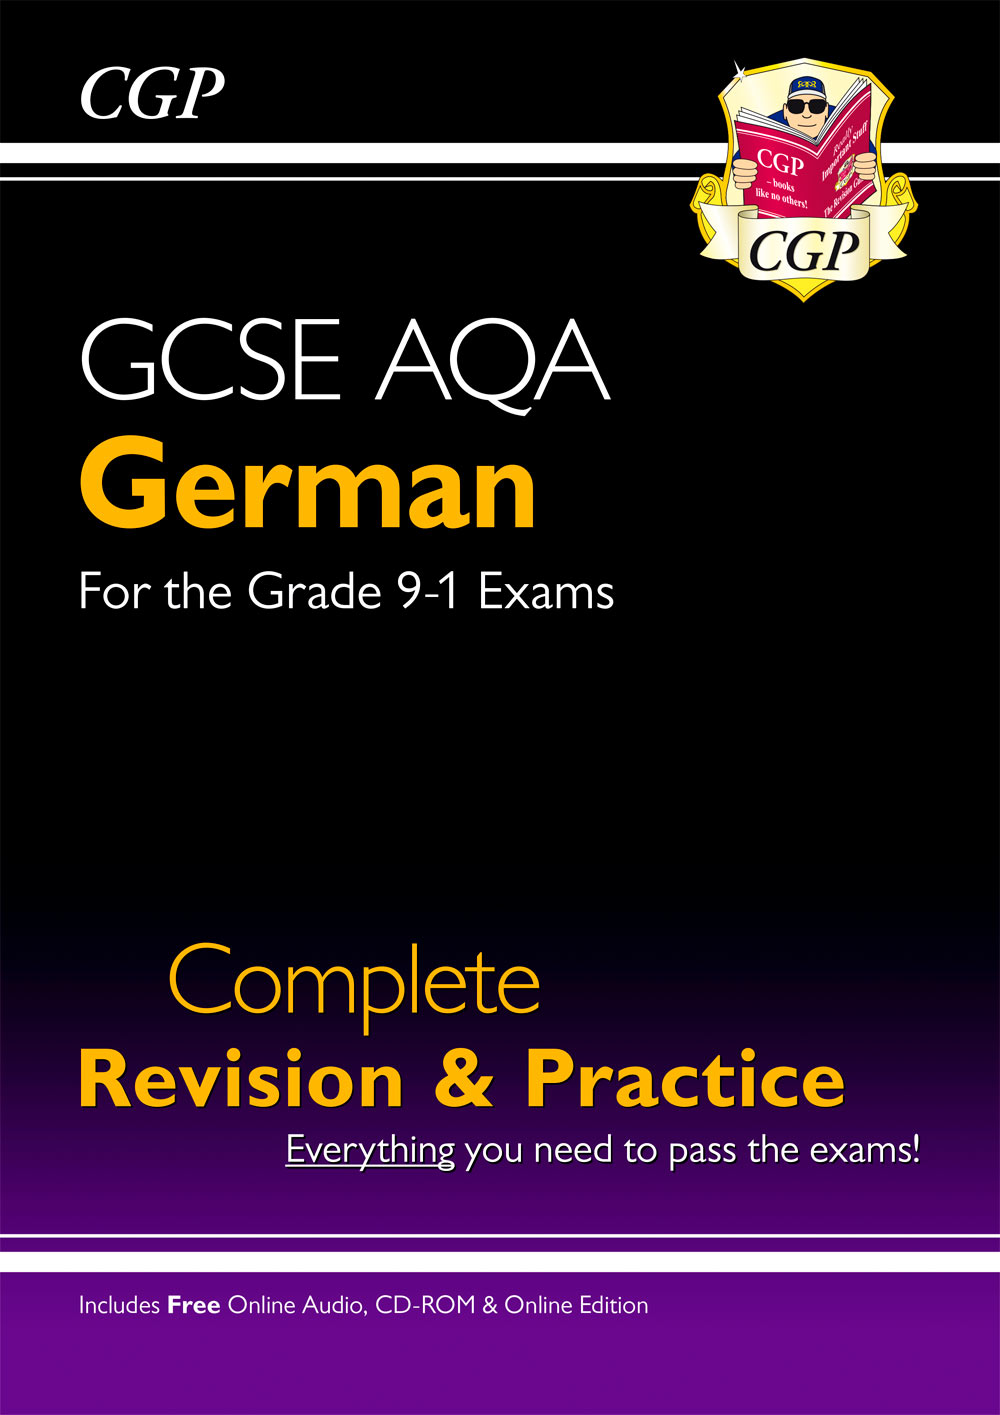 DAS41 - New GCSE German AQA Complete Revision & Practice (with CD & Online Edition) - Grade 9-1 Cour